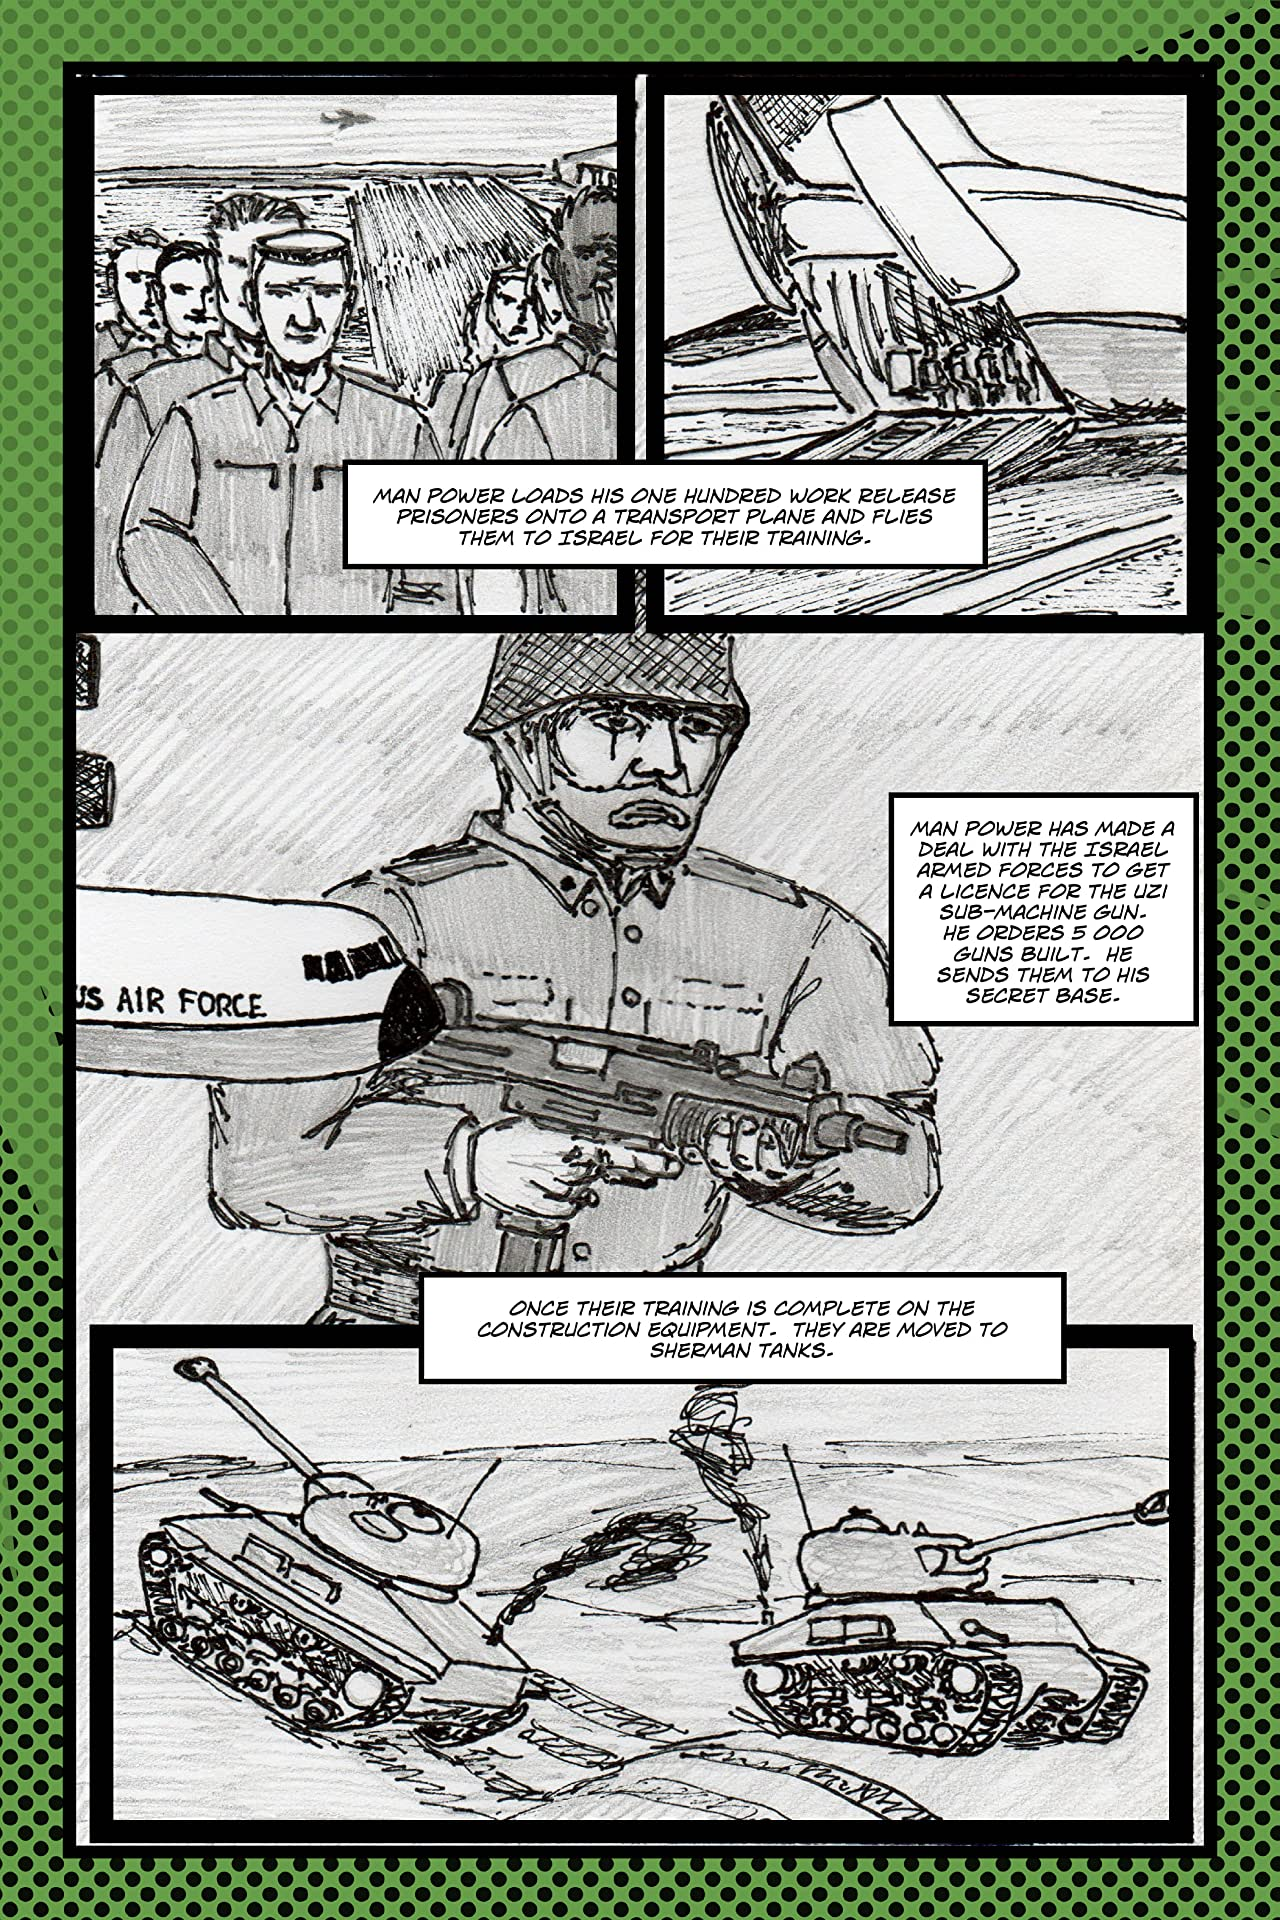 A World of Heroes 6 #4